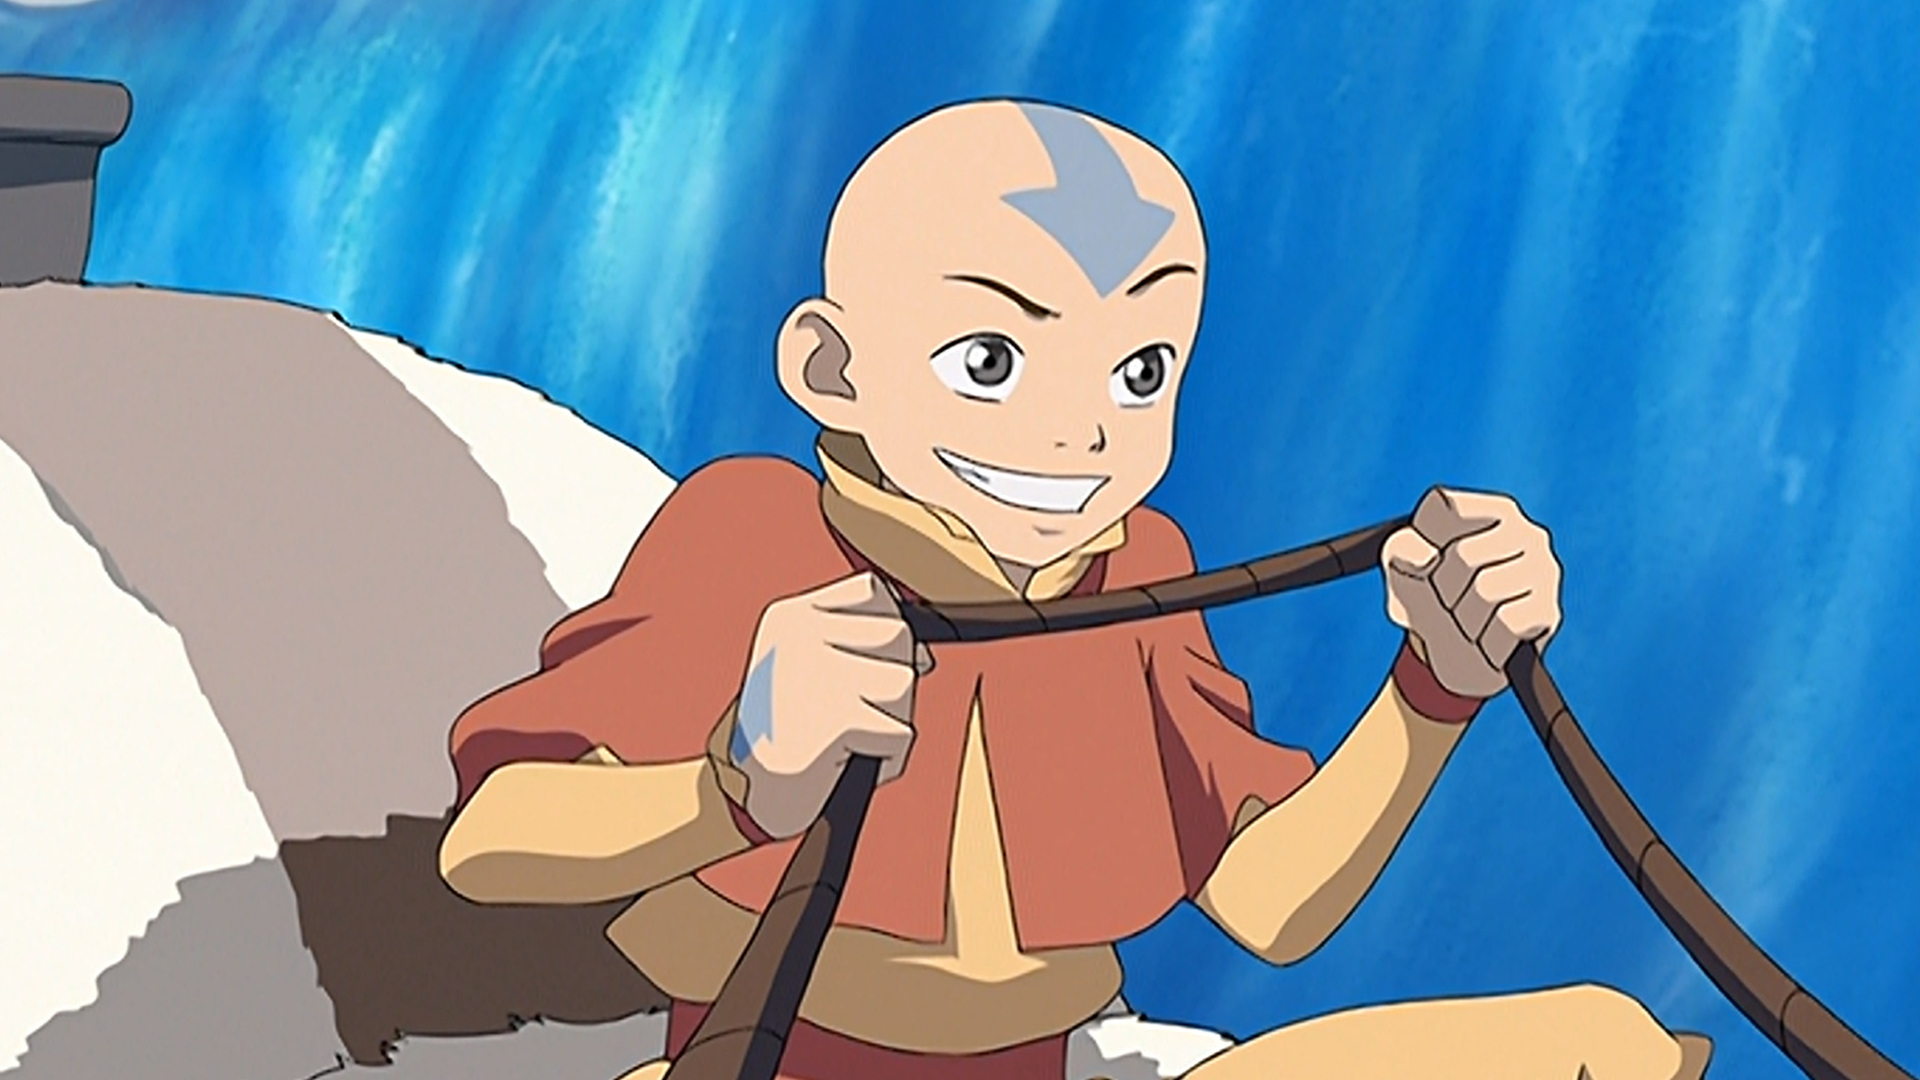 Watch Avatar The Last Airbender Season 1 Episode 1 The Boy In The Iceberg The Avatar Returns Part 1 Full Show On Cbs All Access